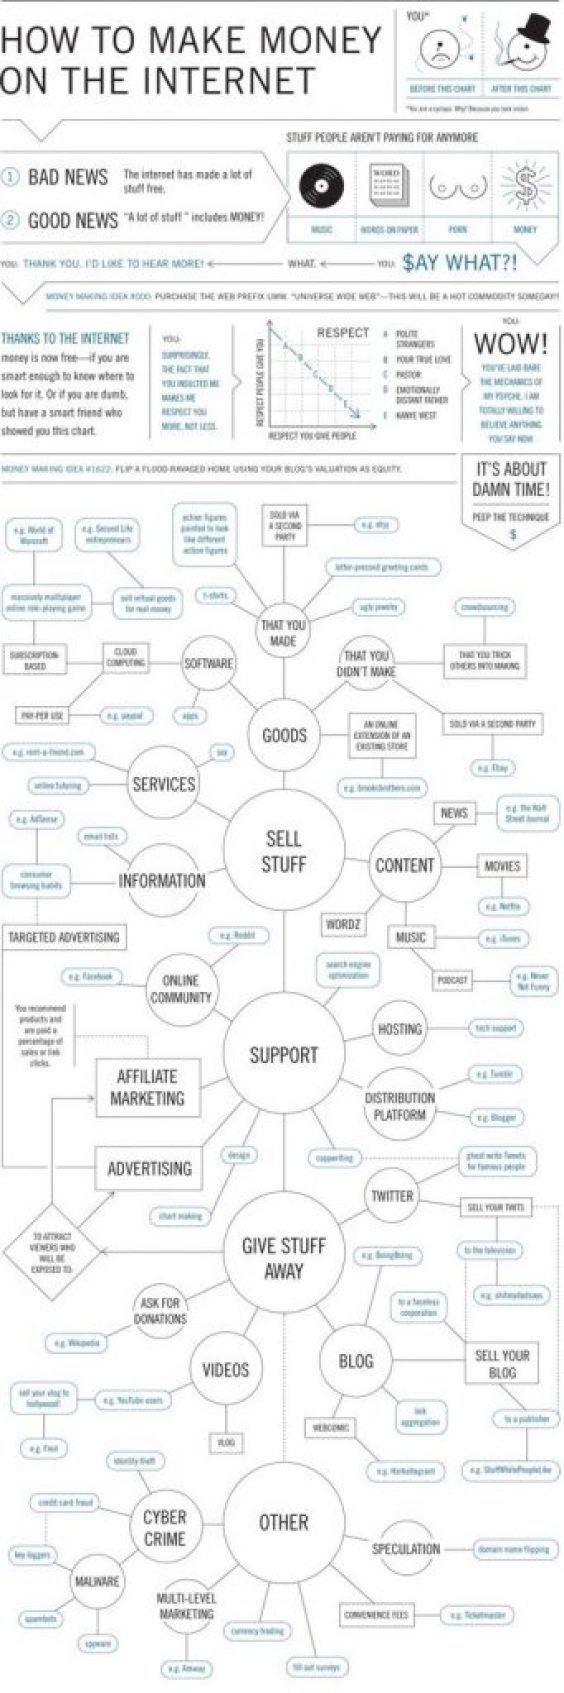 how to make money on the internet infographic